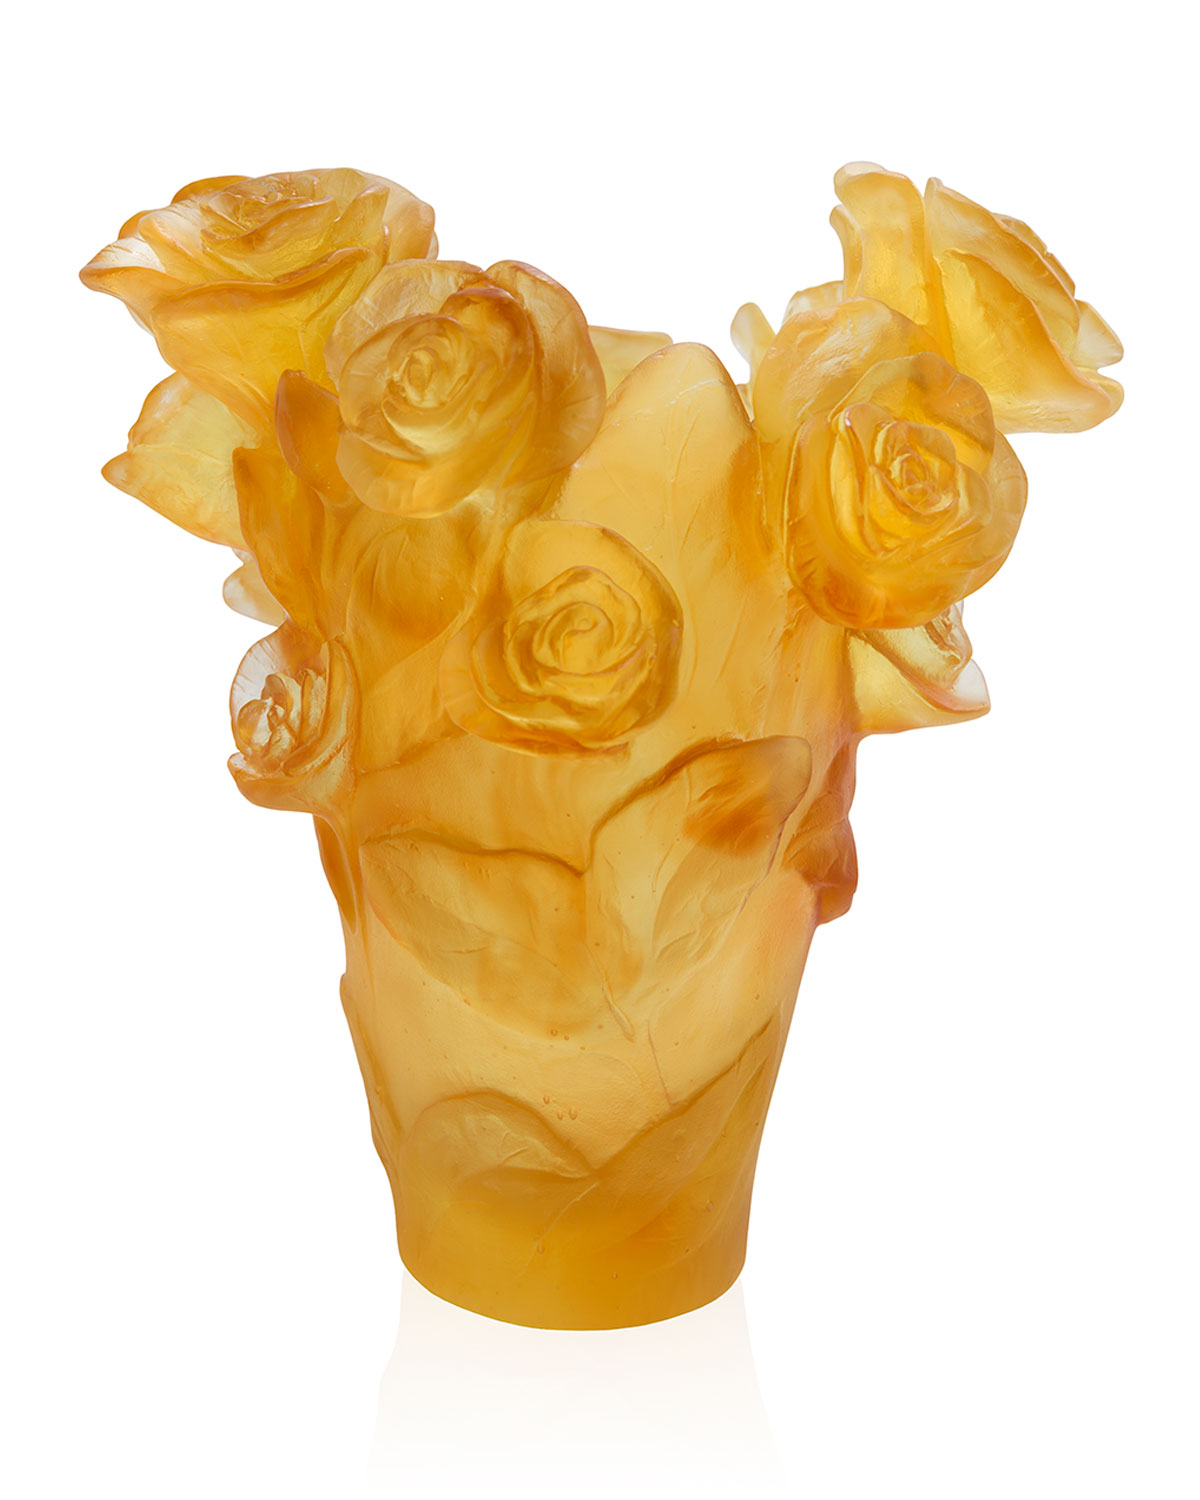 Daum YELLOW SMALL ROSE PASSION VASE